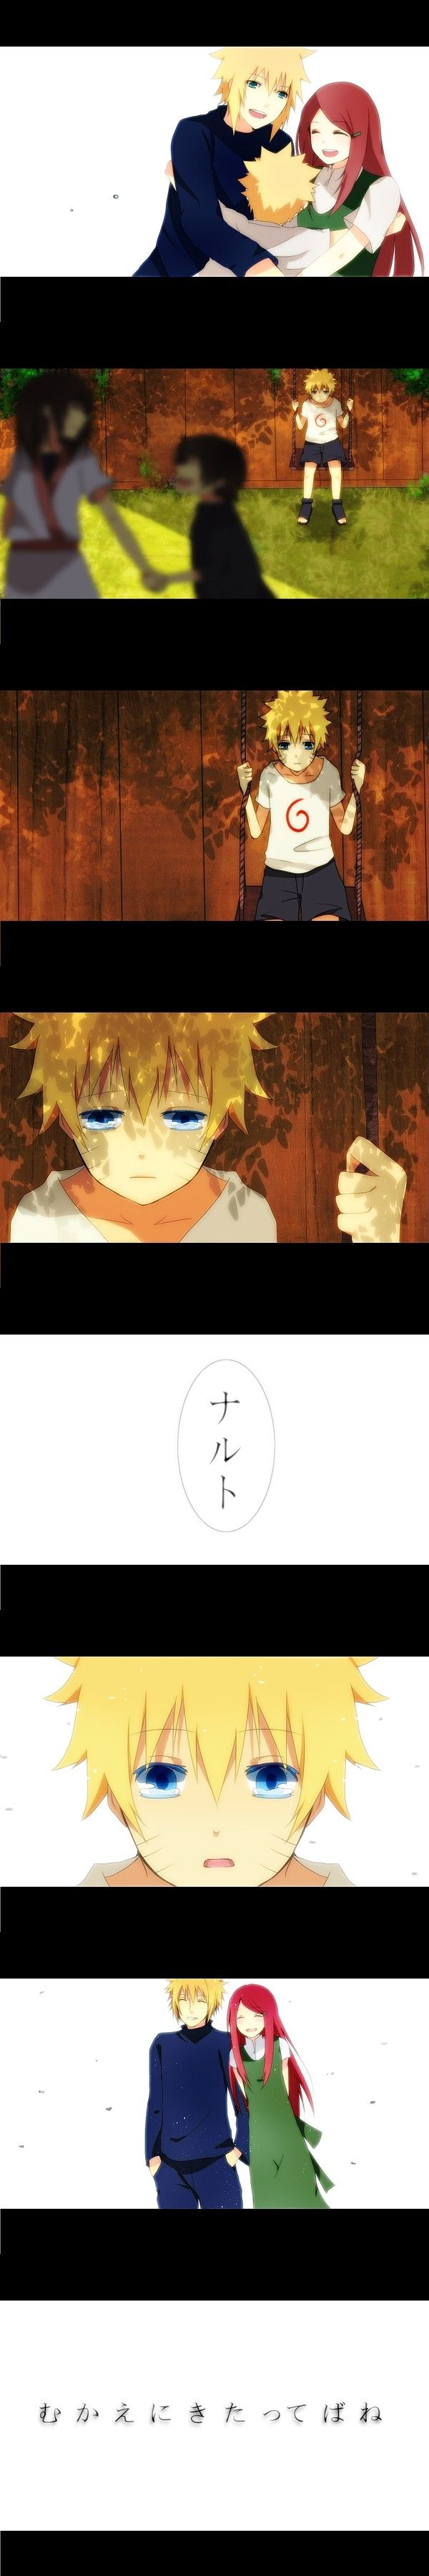 Naruto- touching... wish i could draw that whole scene...